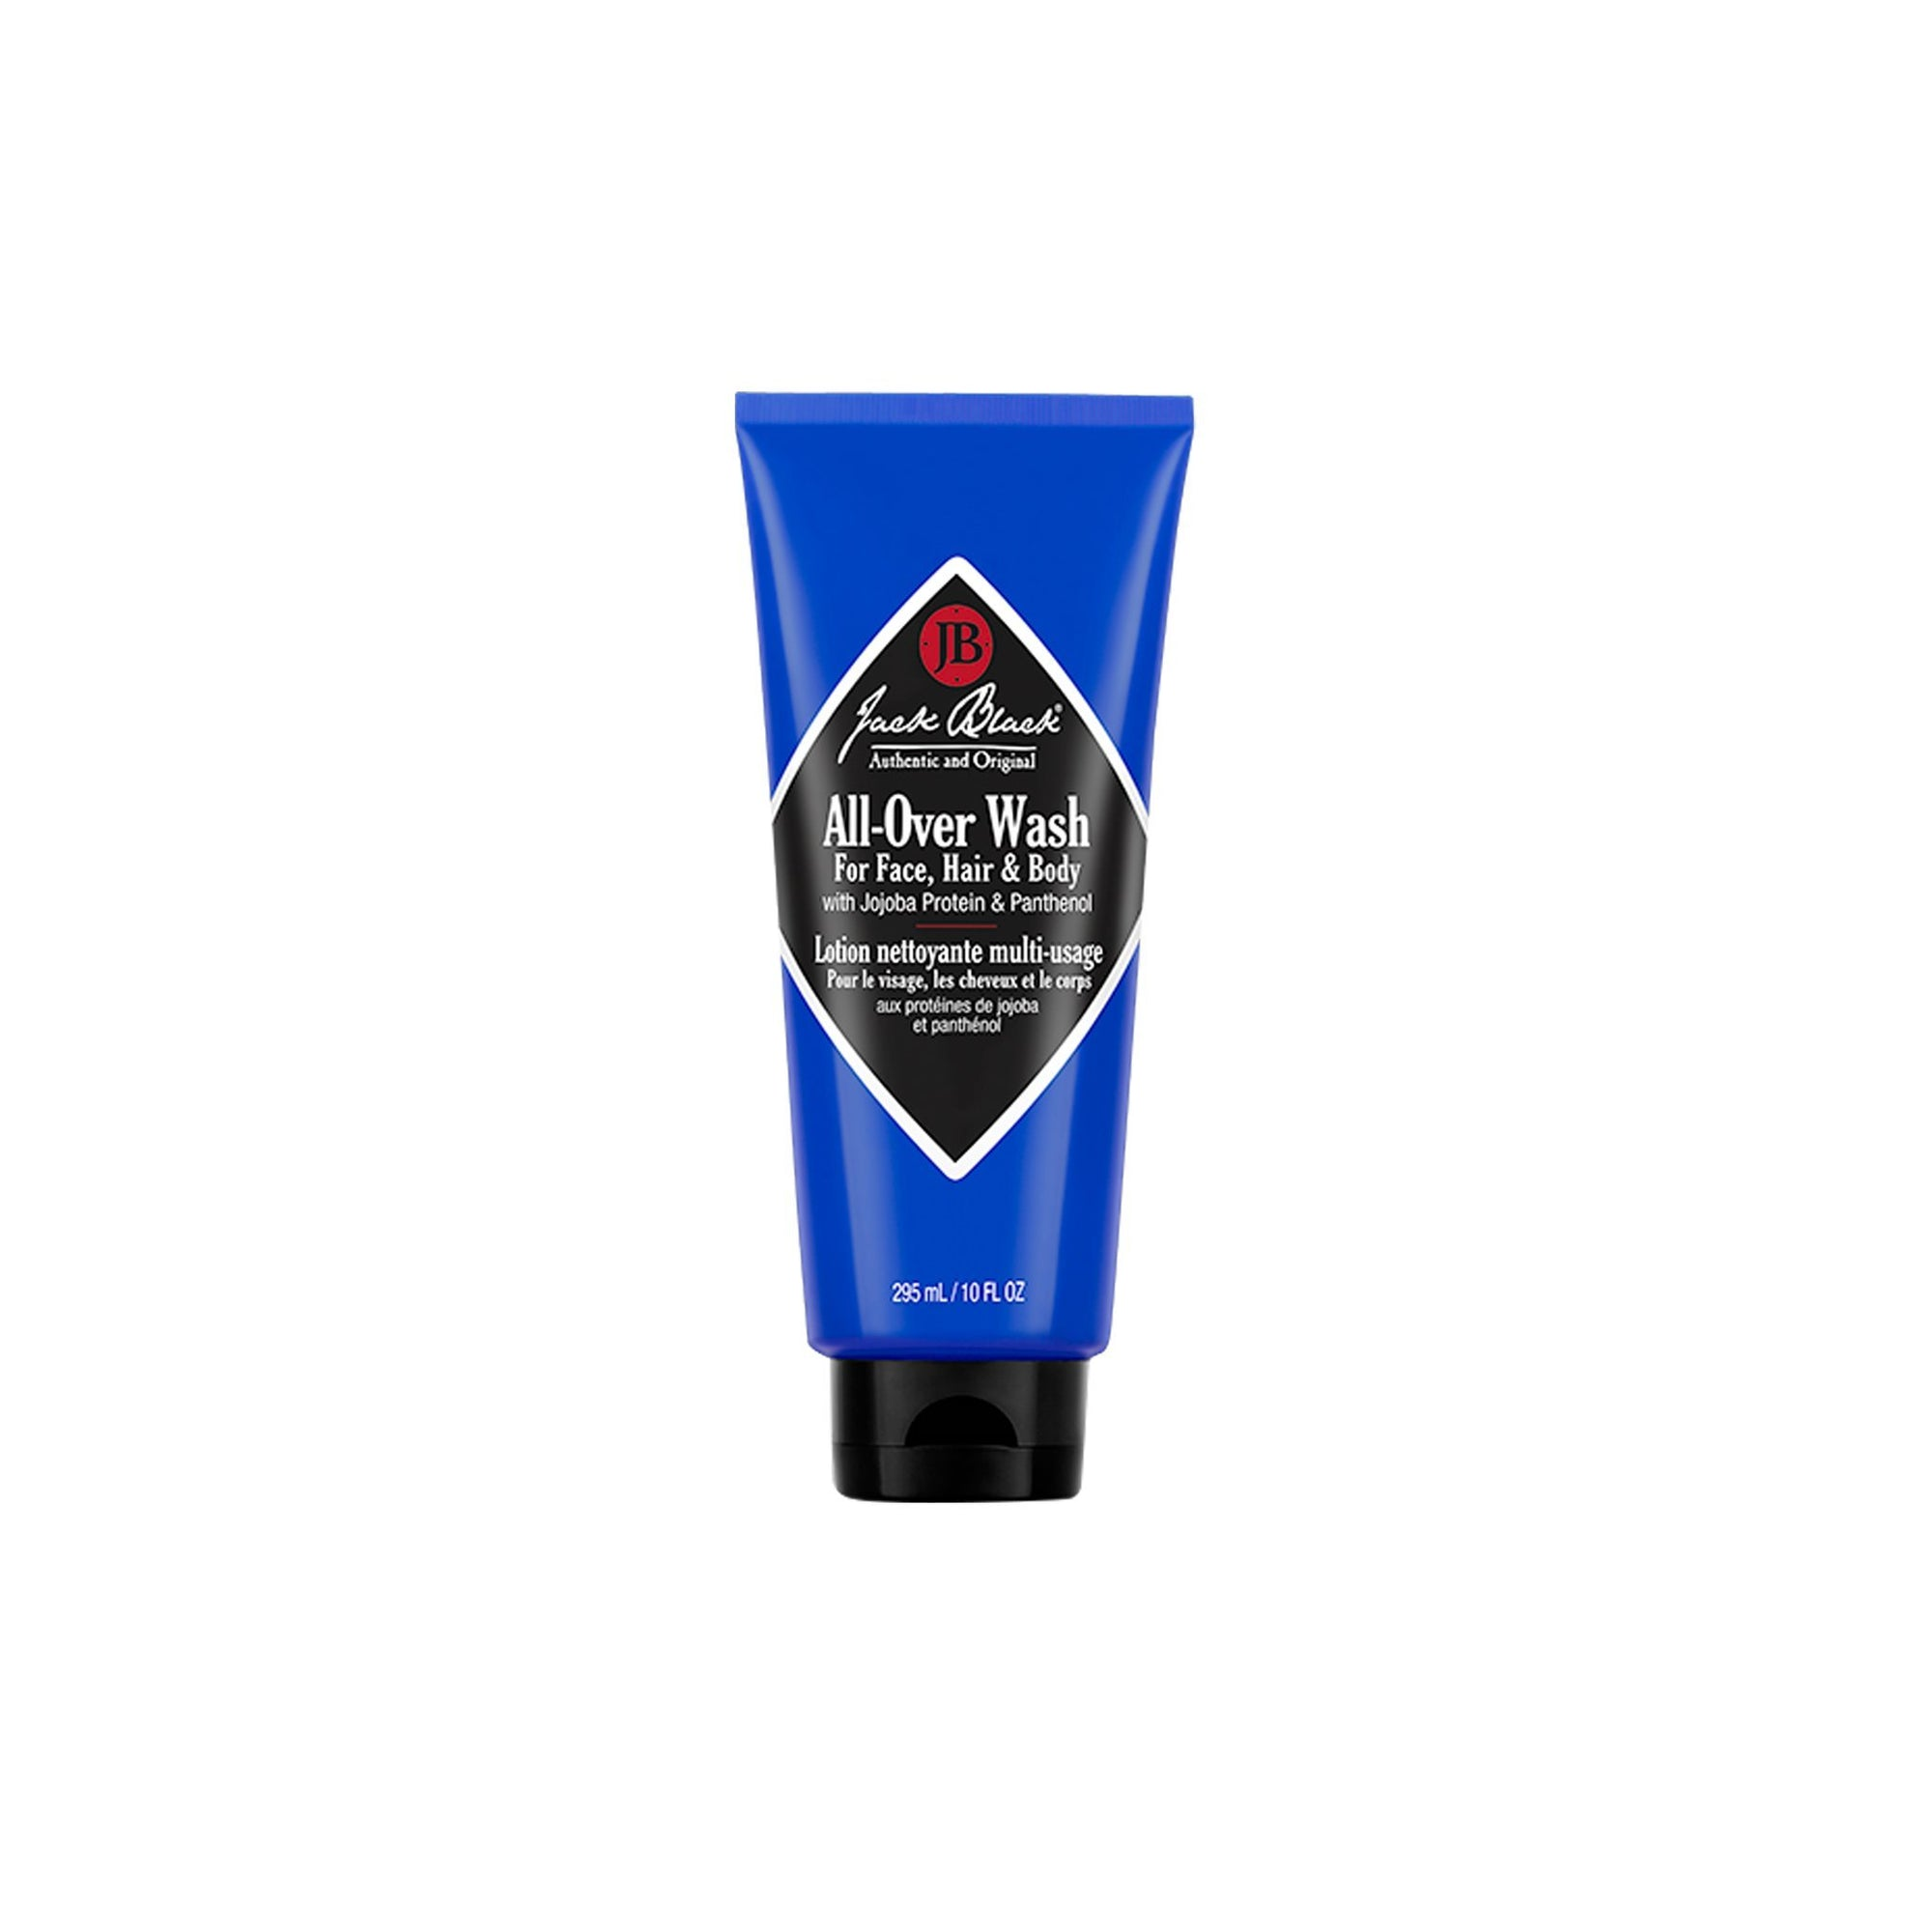 Jack Black All-Over Wash 296ml